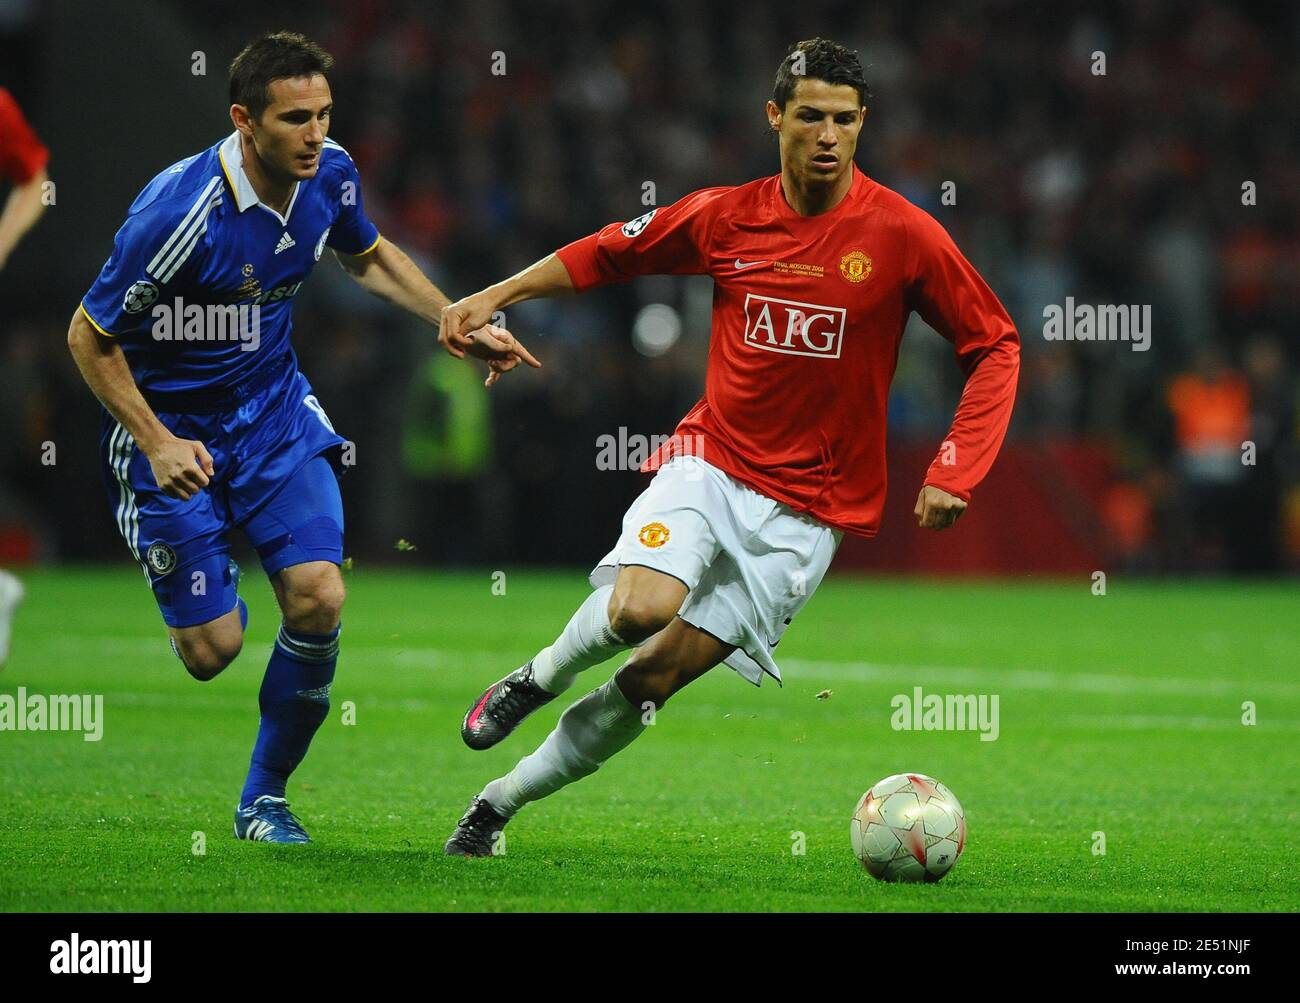 MAnchester United's Cristiano Ronaldo challenges Chelsea's Frank Lampard  during the UEFA Champions League Final Soccer match, Manchester United vs  Chelsea at the Luzhniki Stadium in Moscow, Russia on May 21, 2008. The